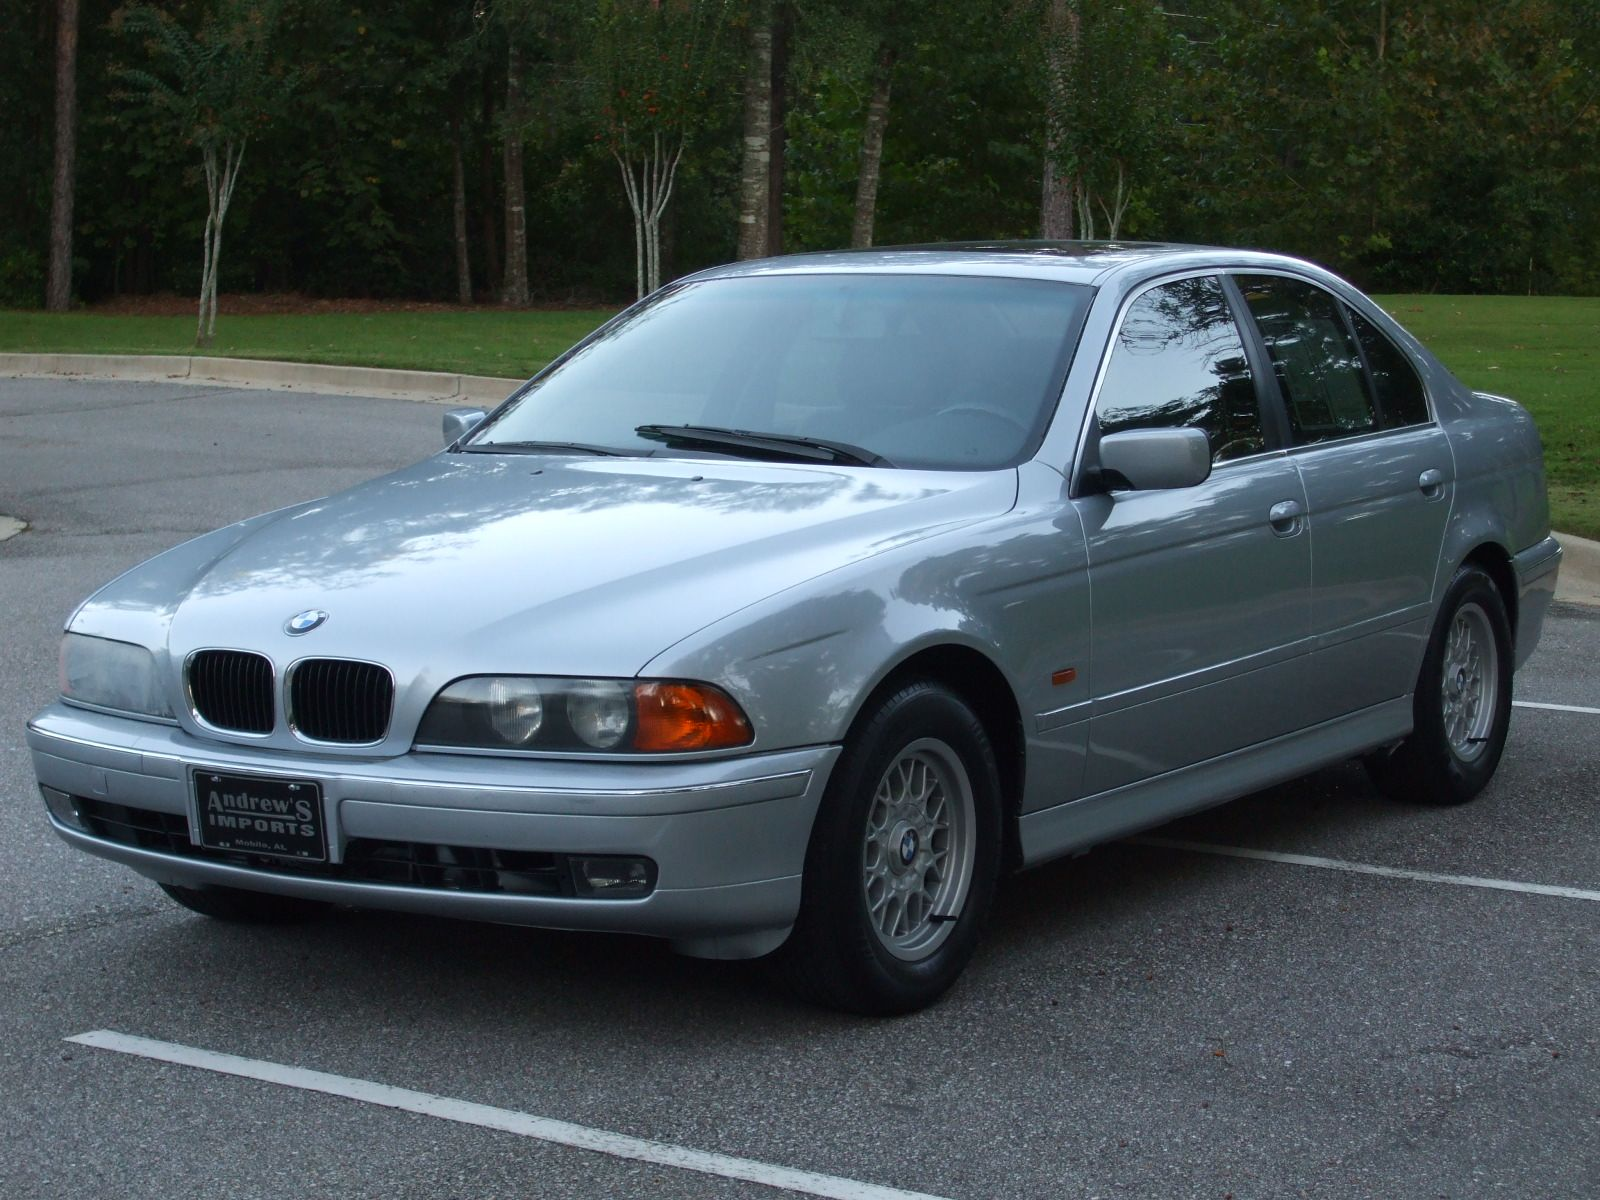 Mine is a dark red Love my 1998 BMW 528i